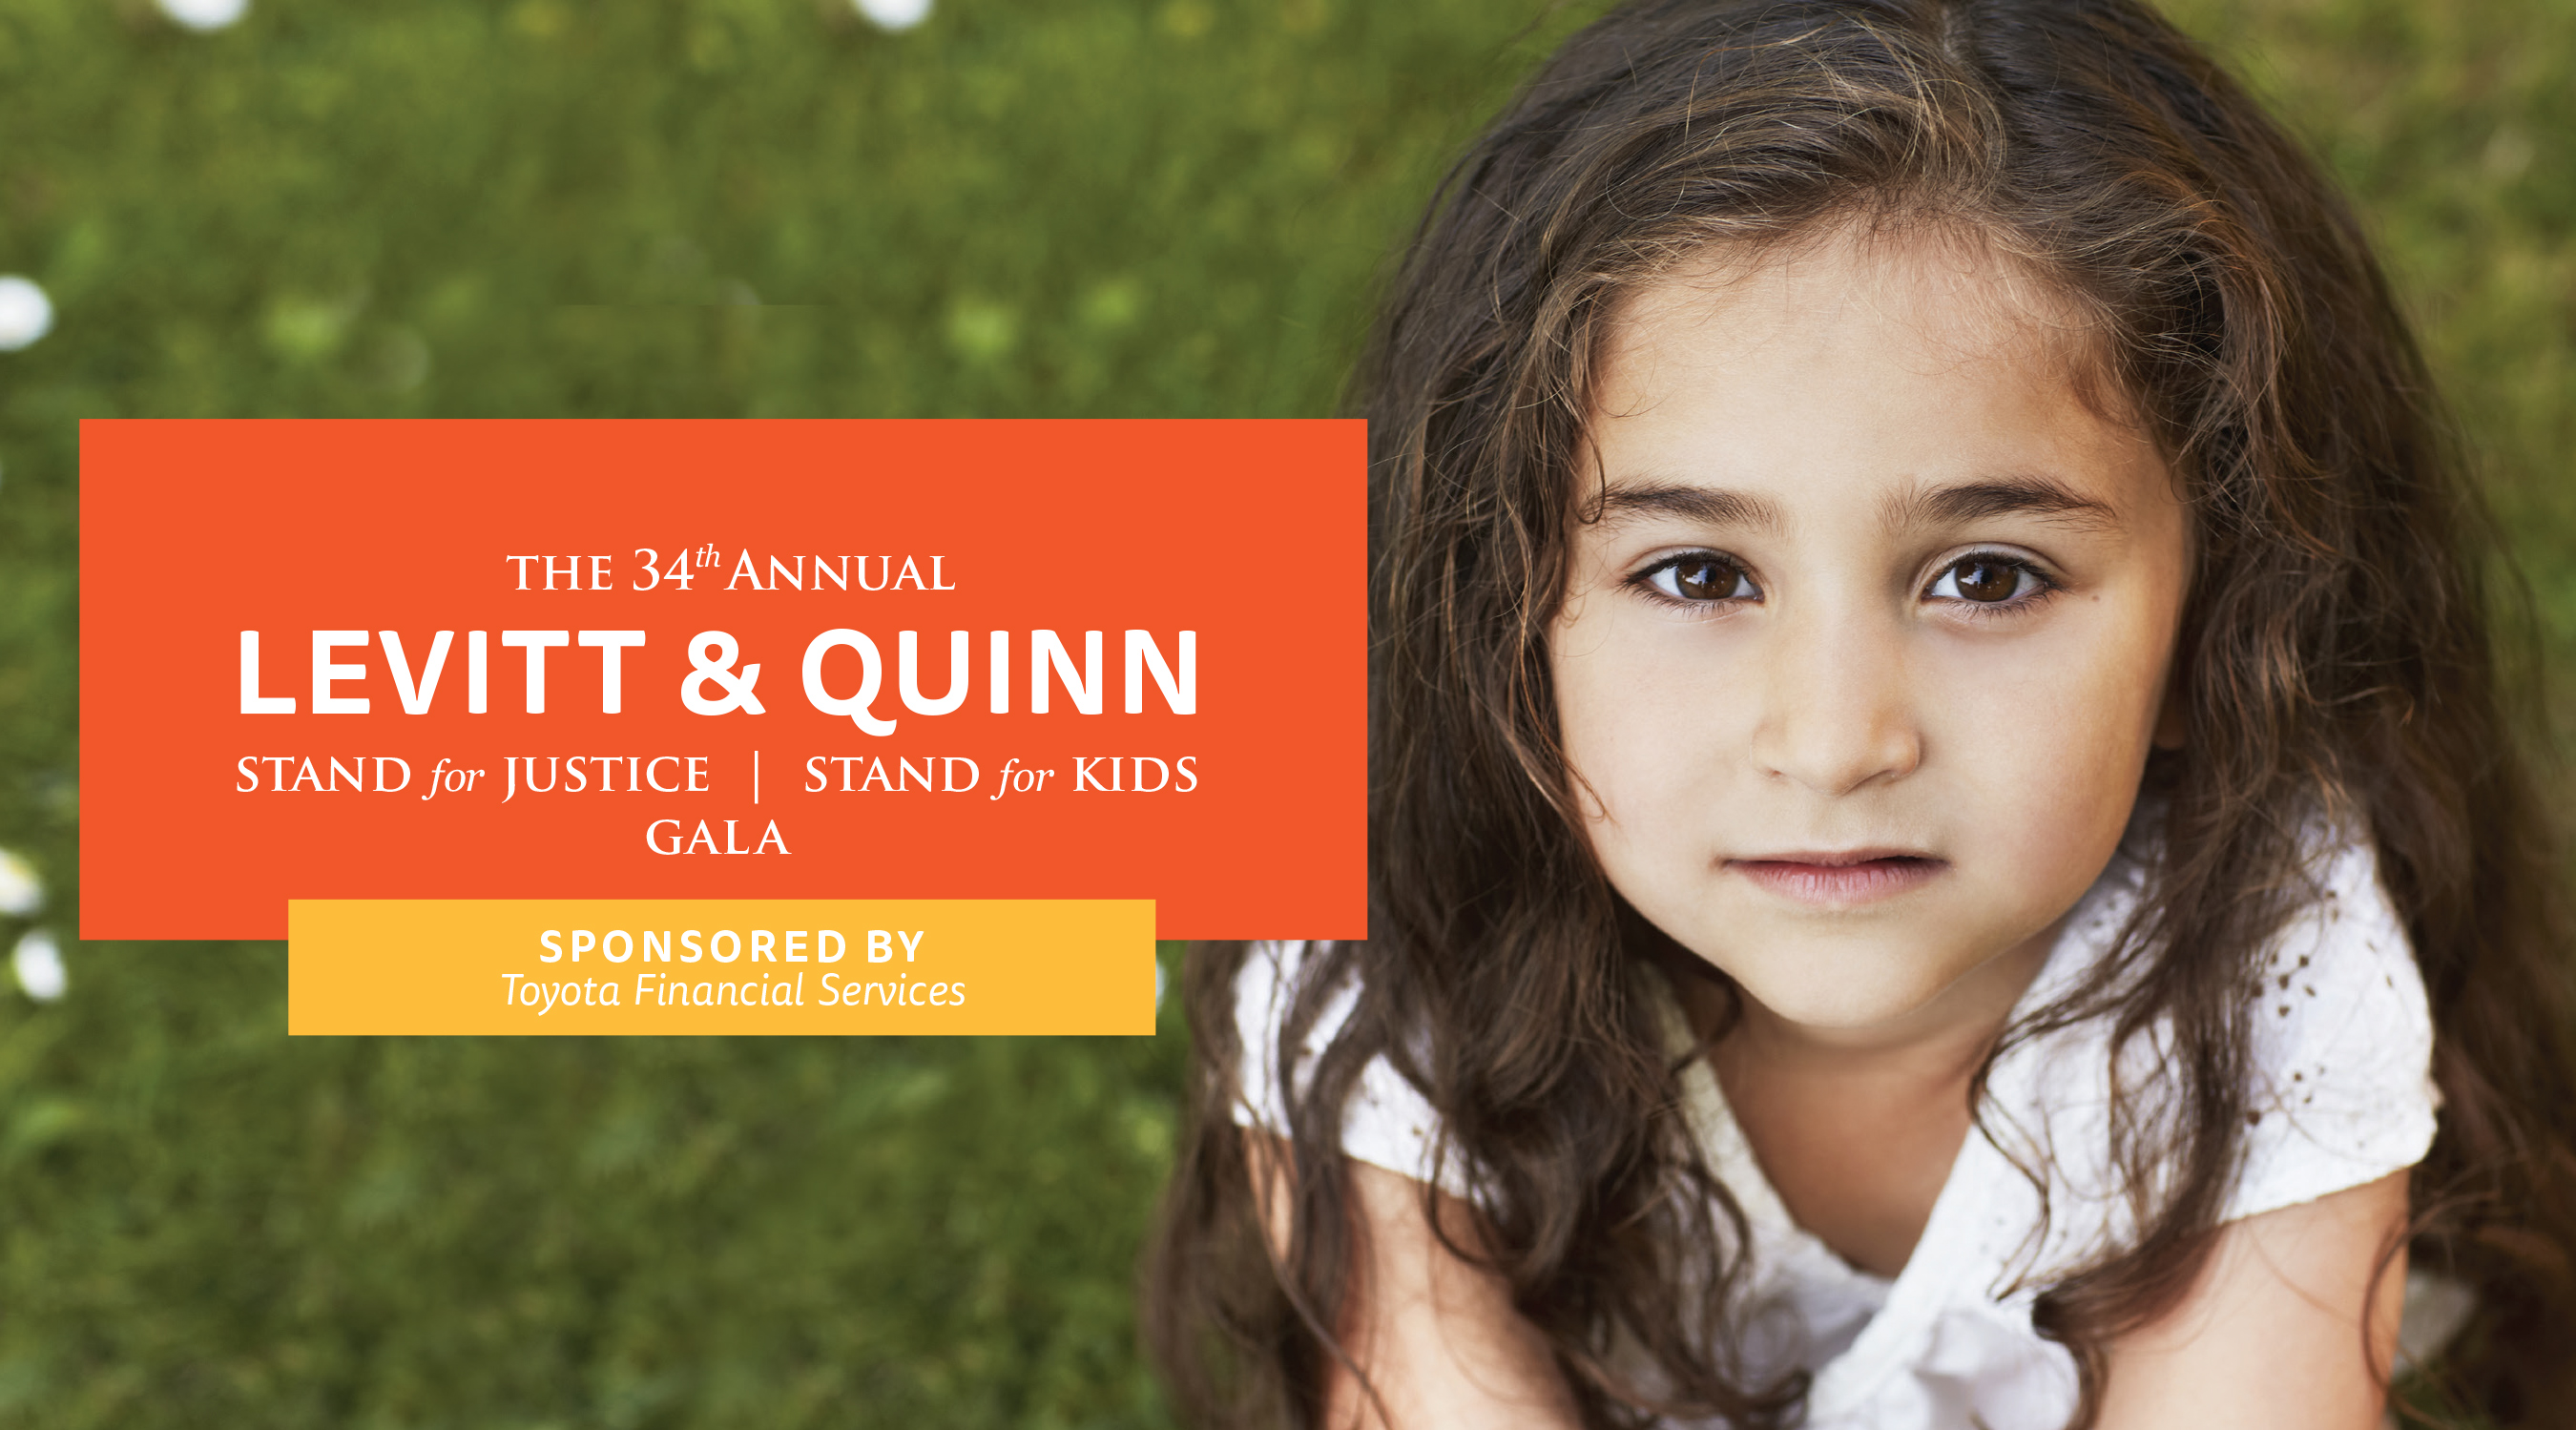 2015 Stand for Justice   Stand for Kids Gala